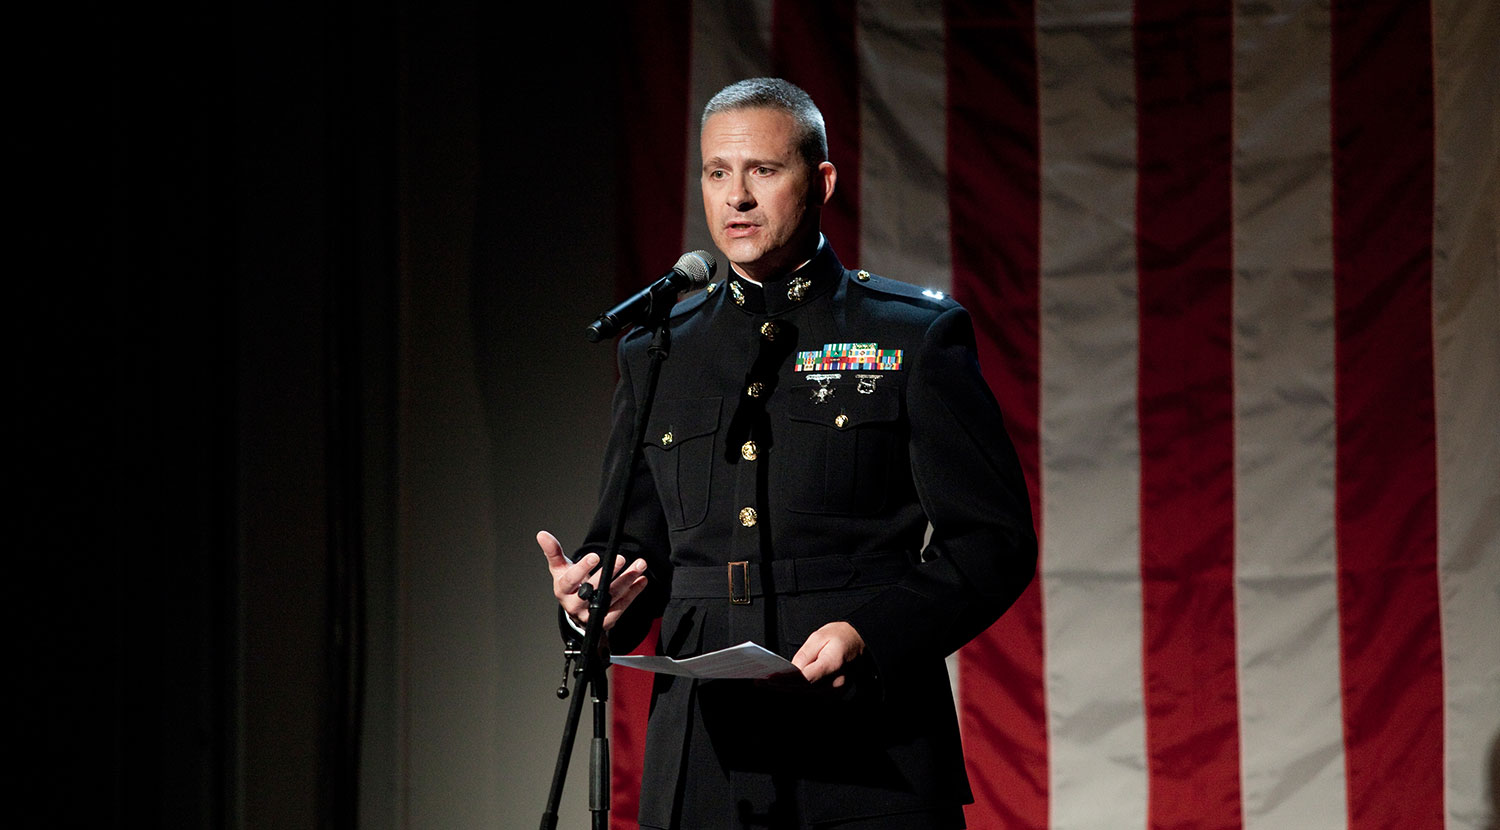 Captain Eric Tausch, Acting Director of Public Affairs for the United States Marine Corps